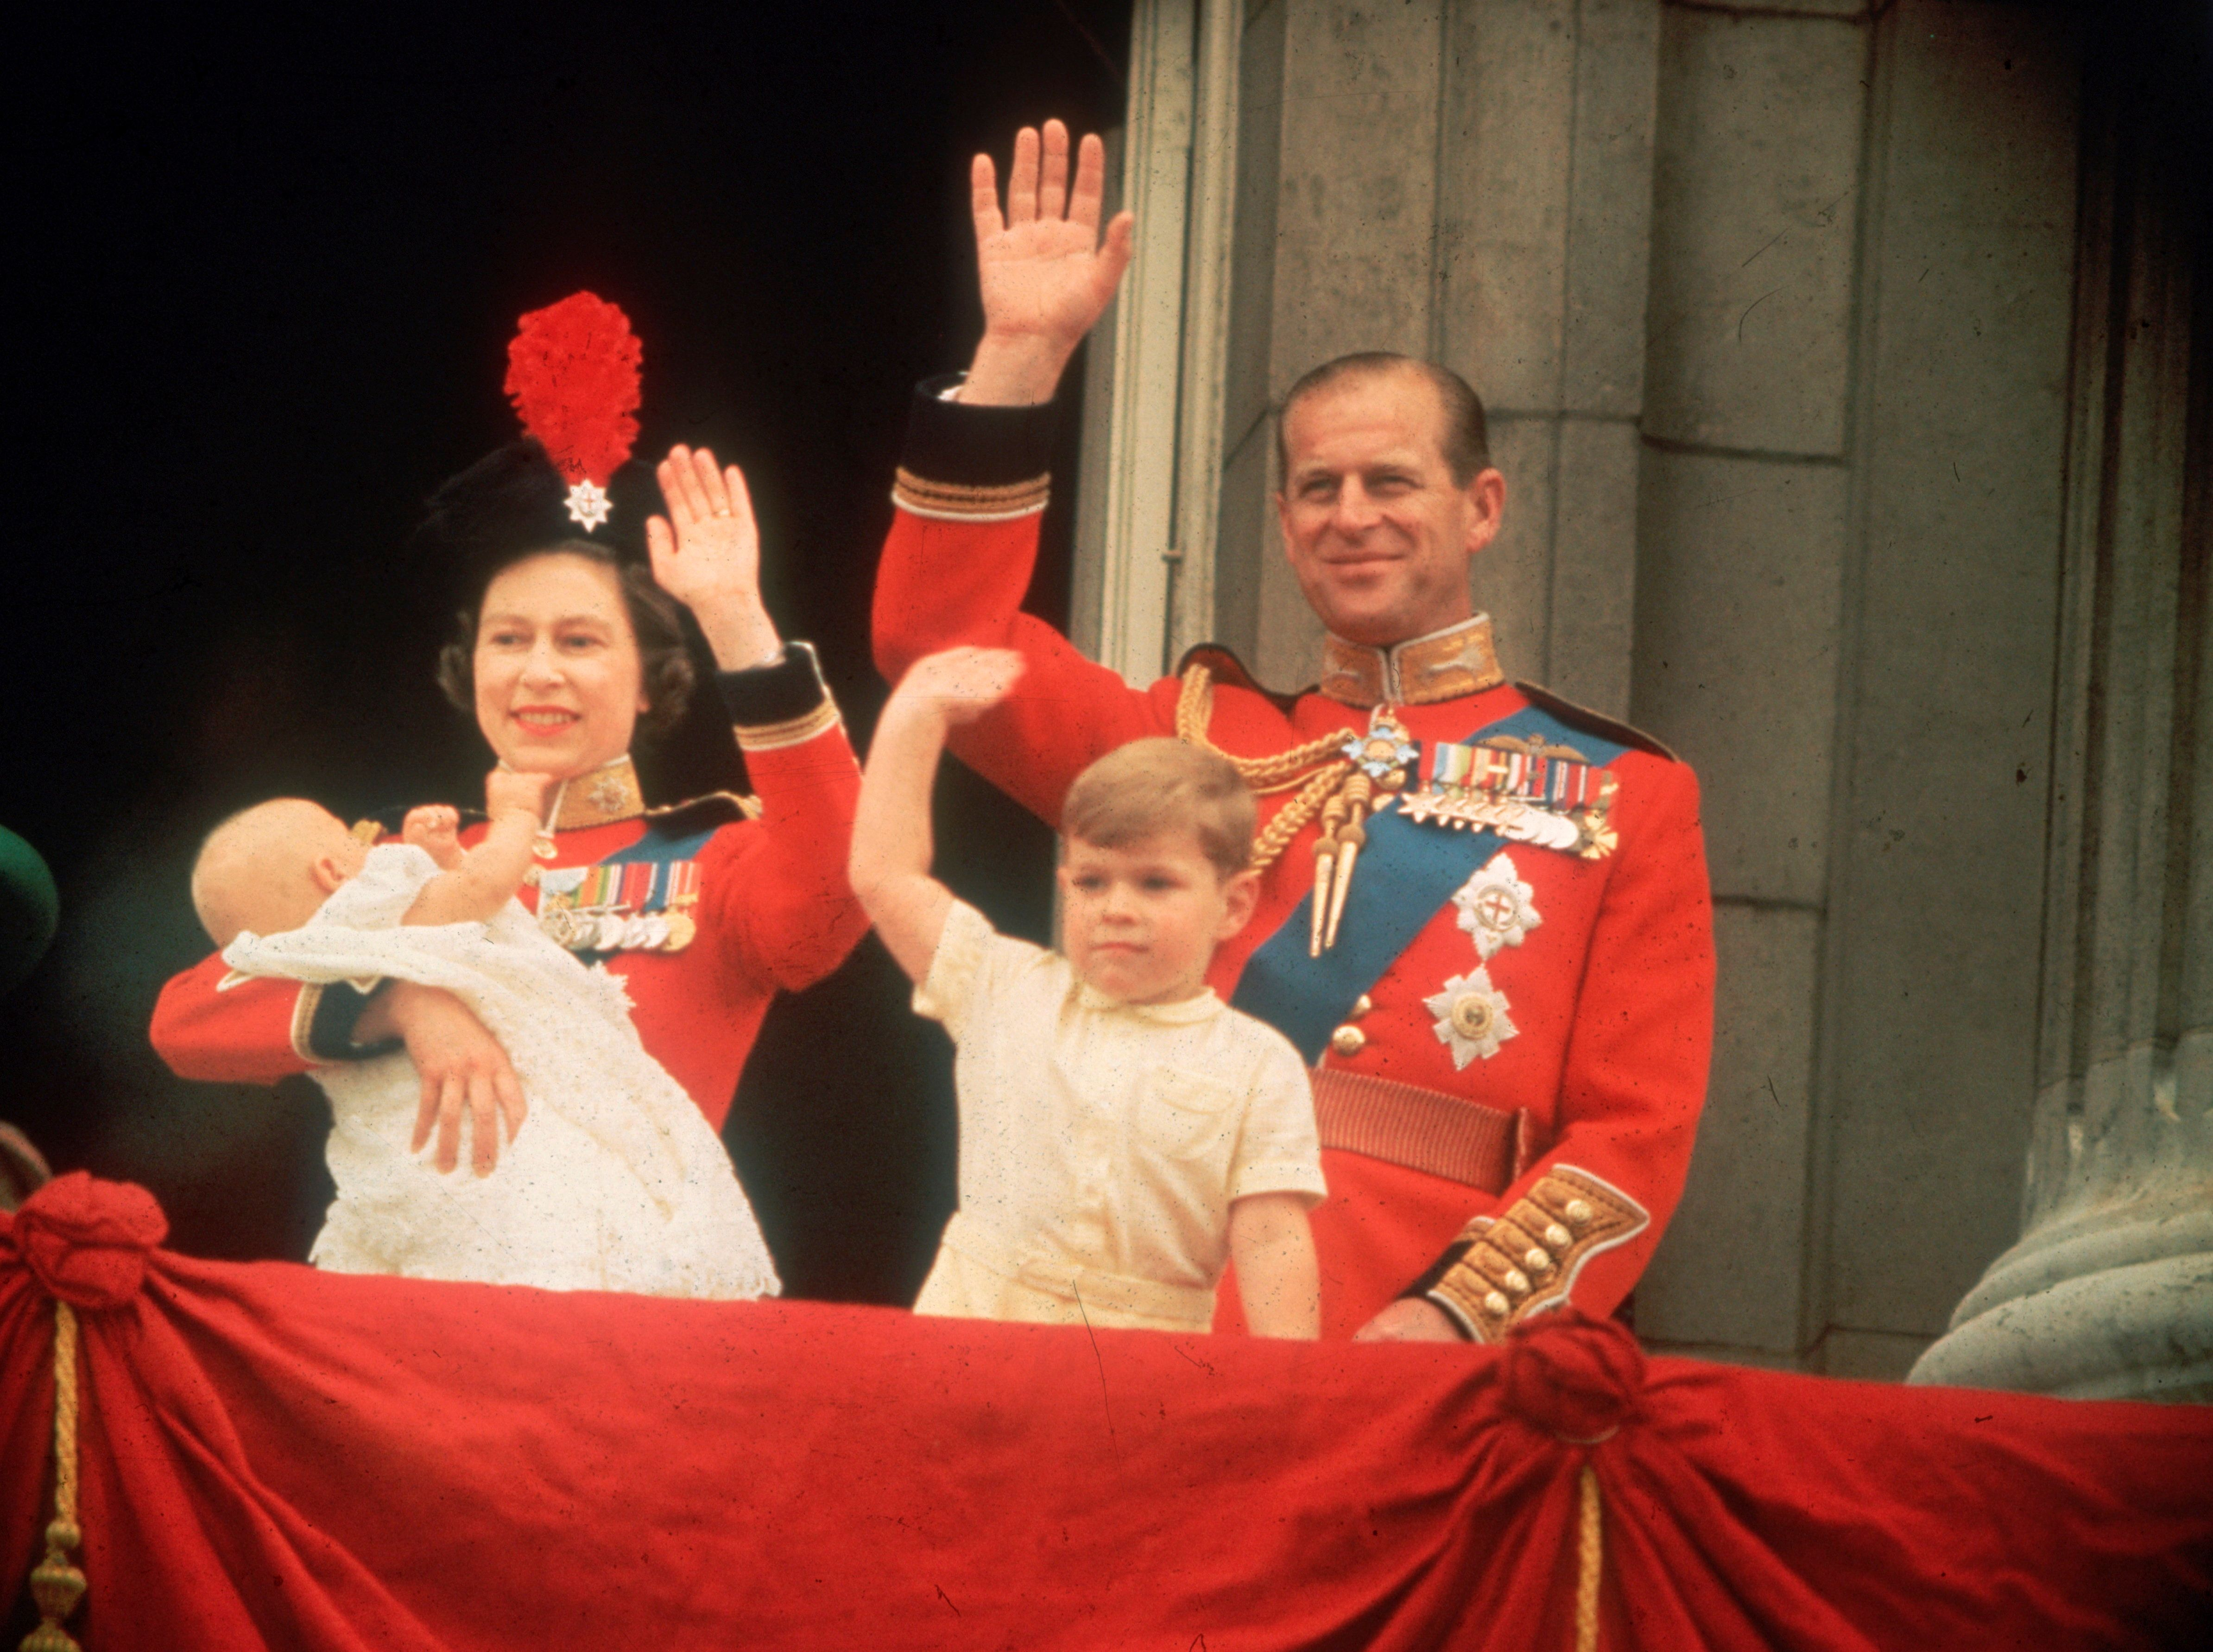 Elizabeth expanded her family once again when she welcomed Prince Edward (in the queen's arms on the left) in 1964. This phot